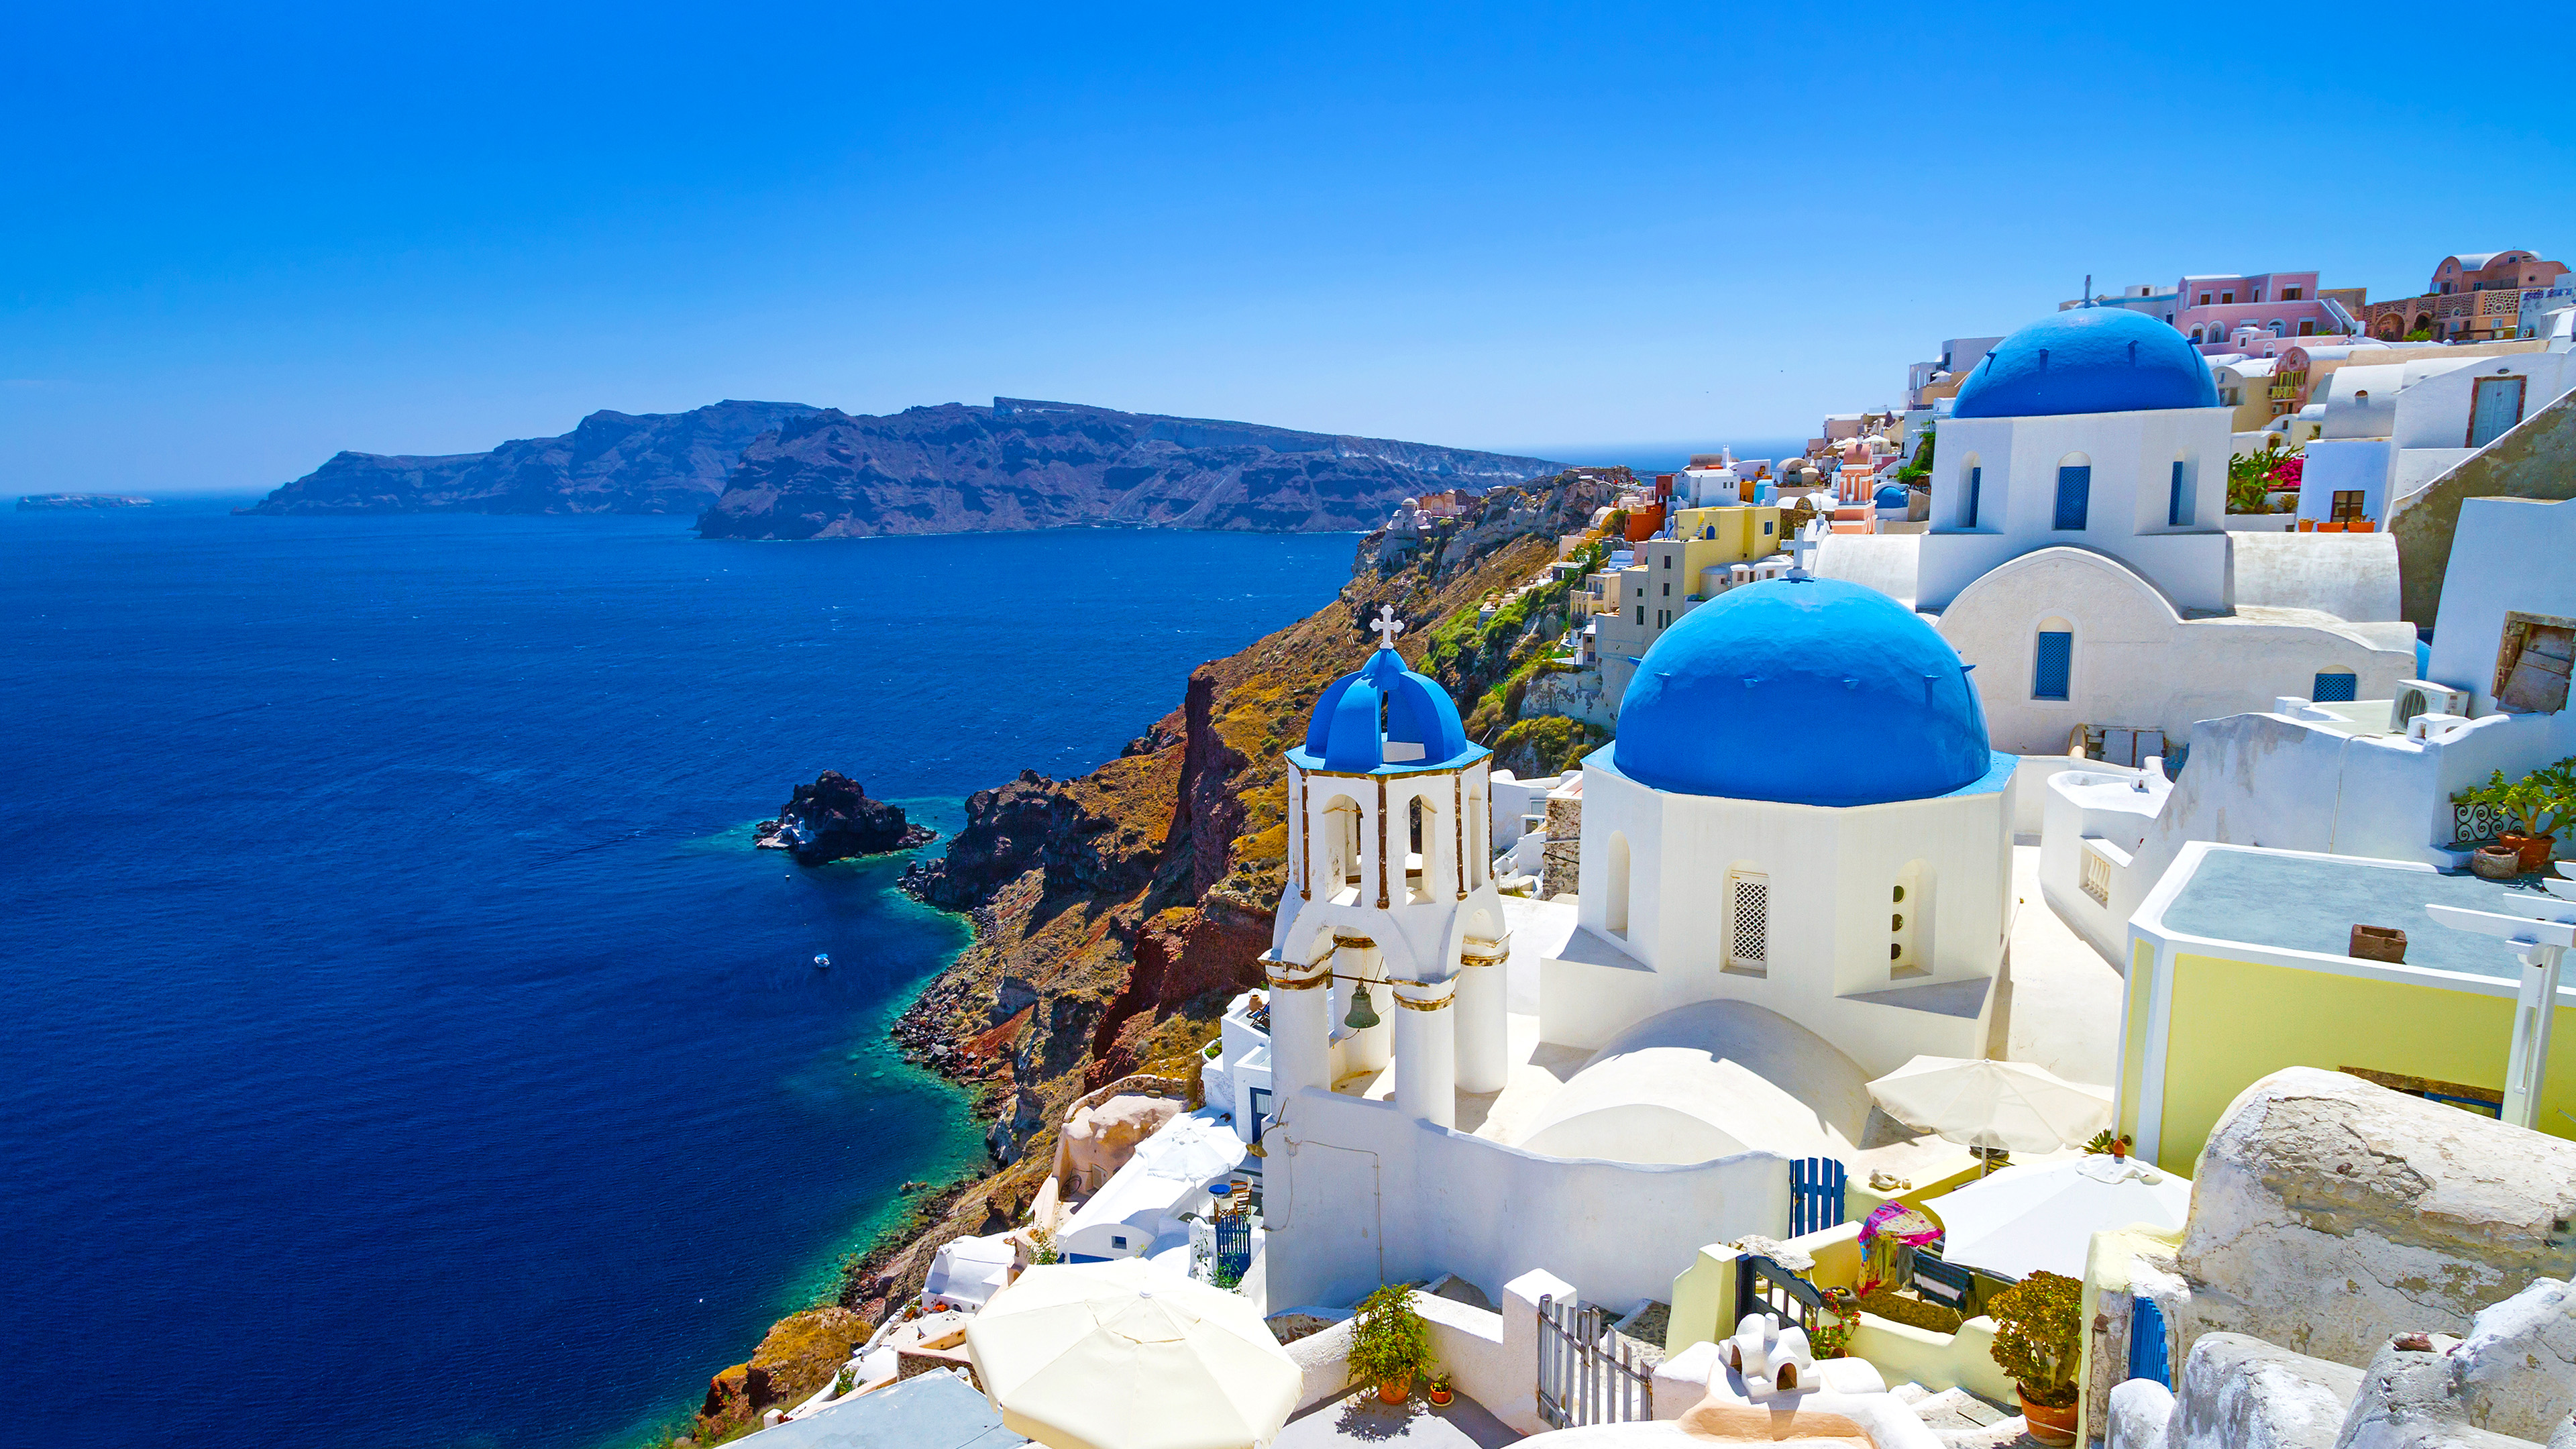 Santorini Greece Wallpaper At Night HD Wallpaper Background Images 3840x2160